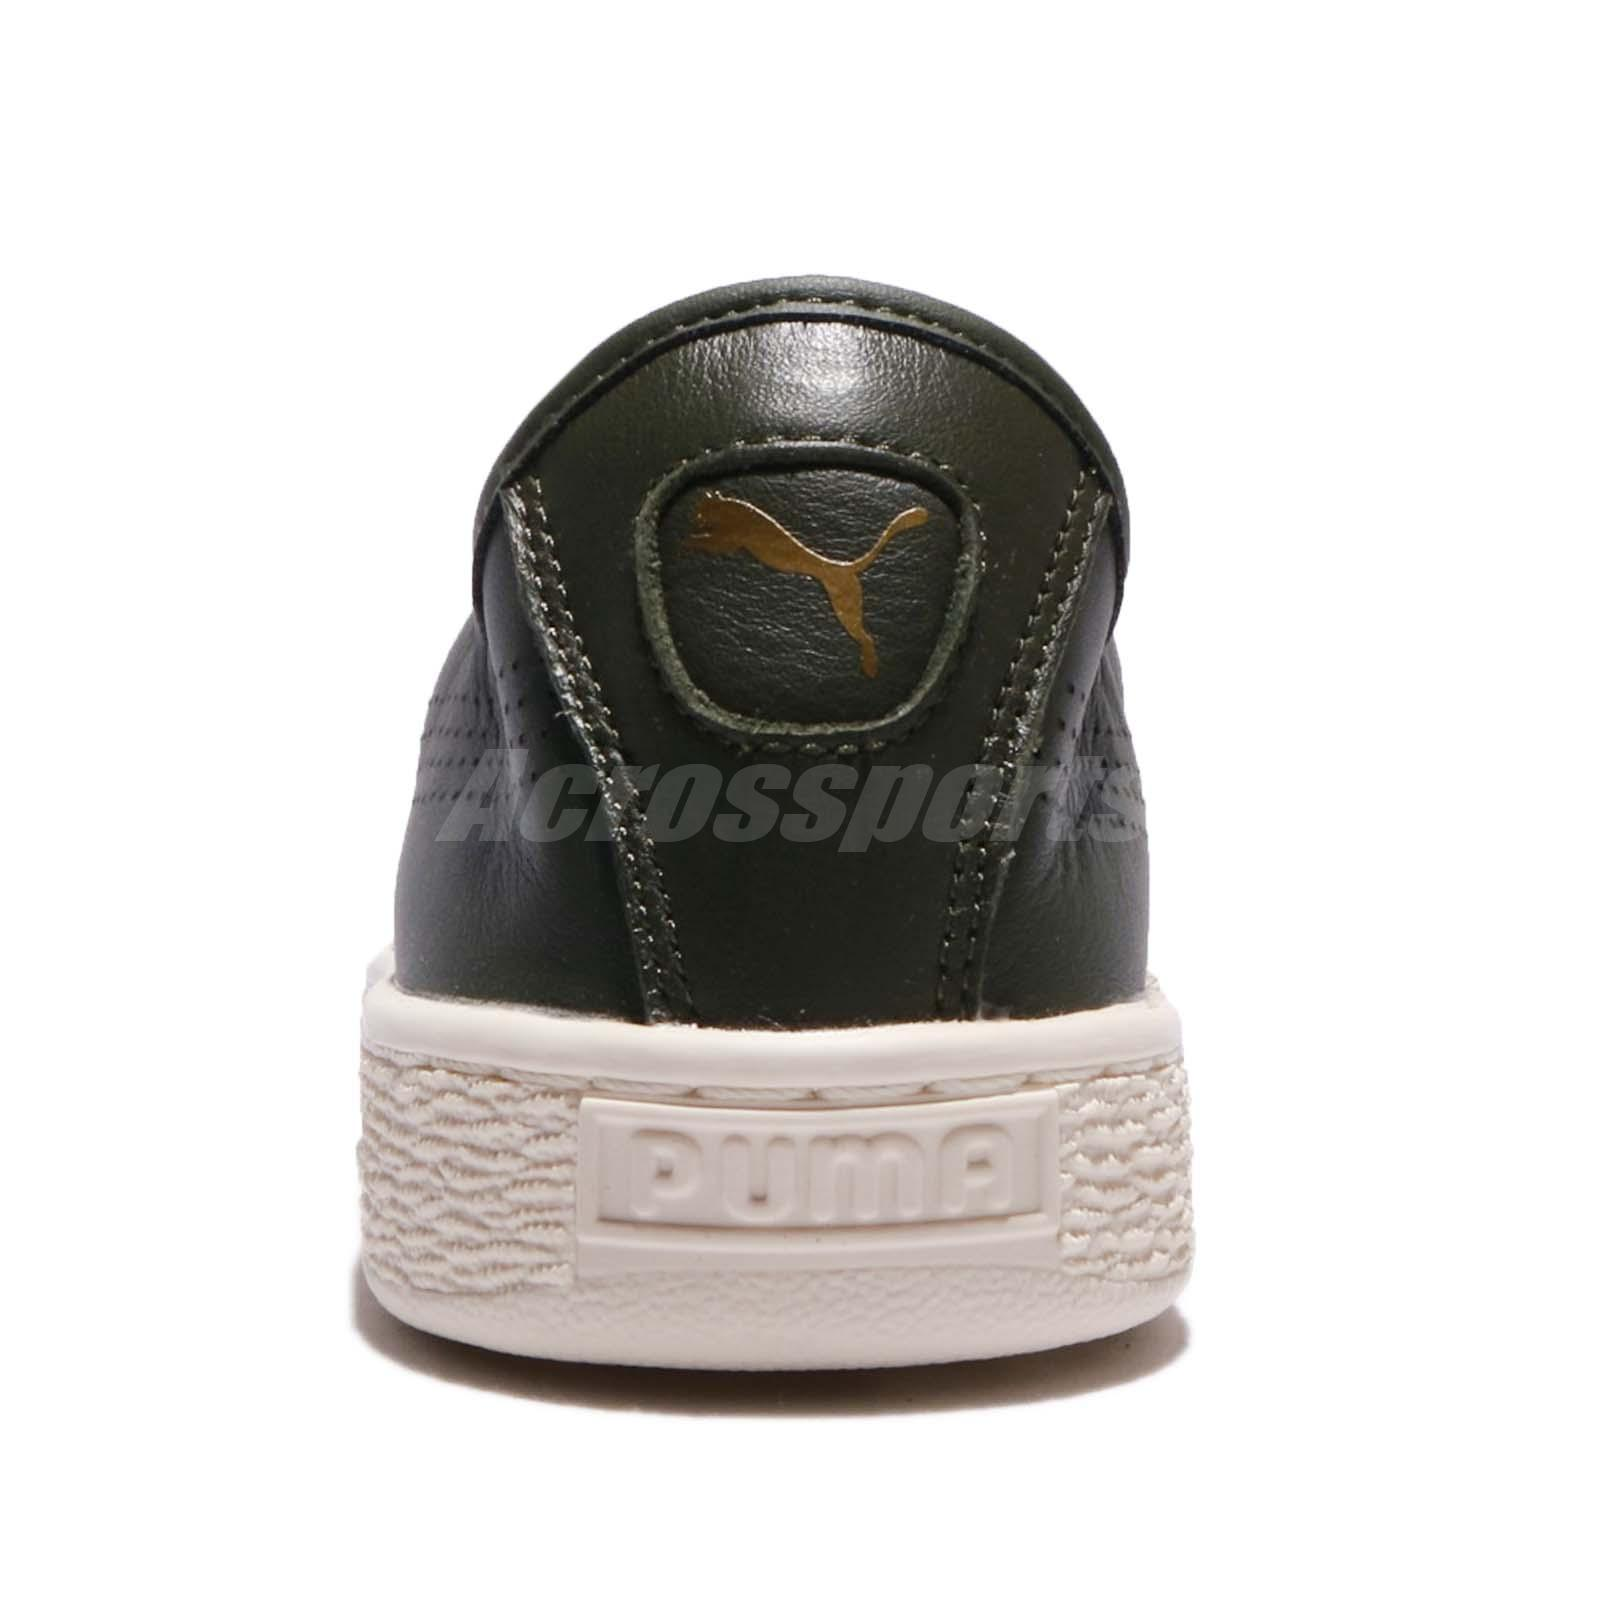 6933ff639ccd Puma Basket Classic Soft Leather Olive Ivory Men Shoes Sneakers ...